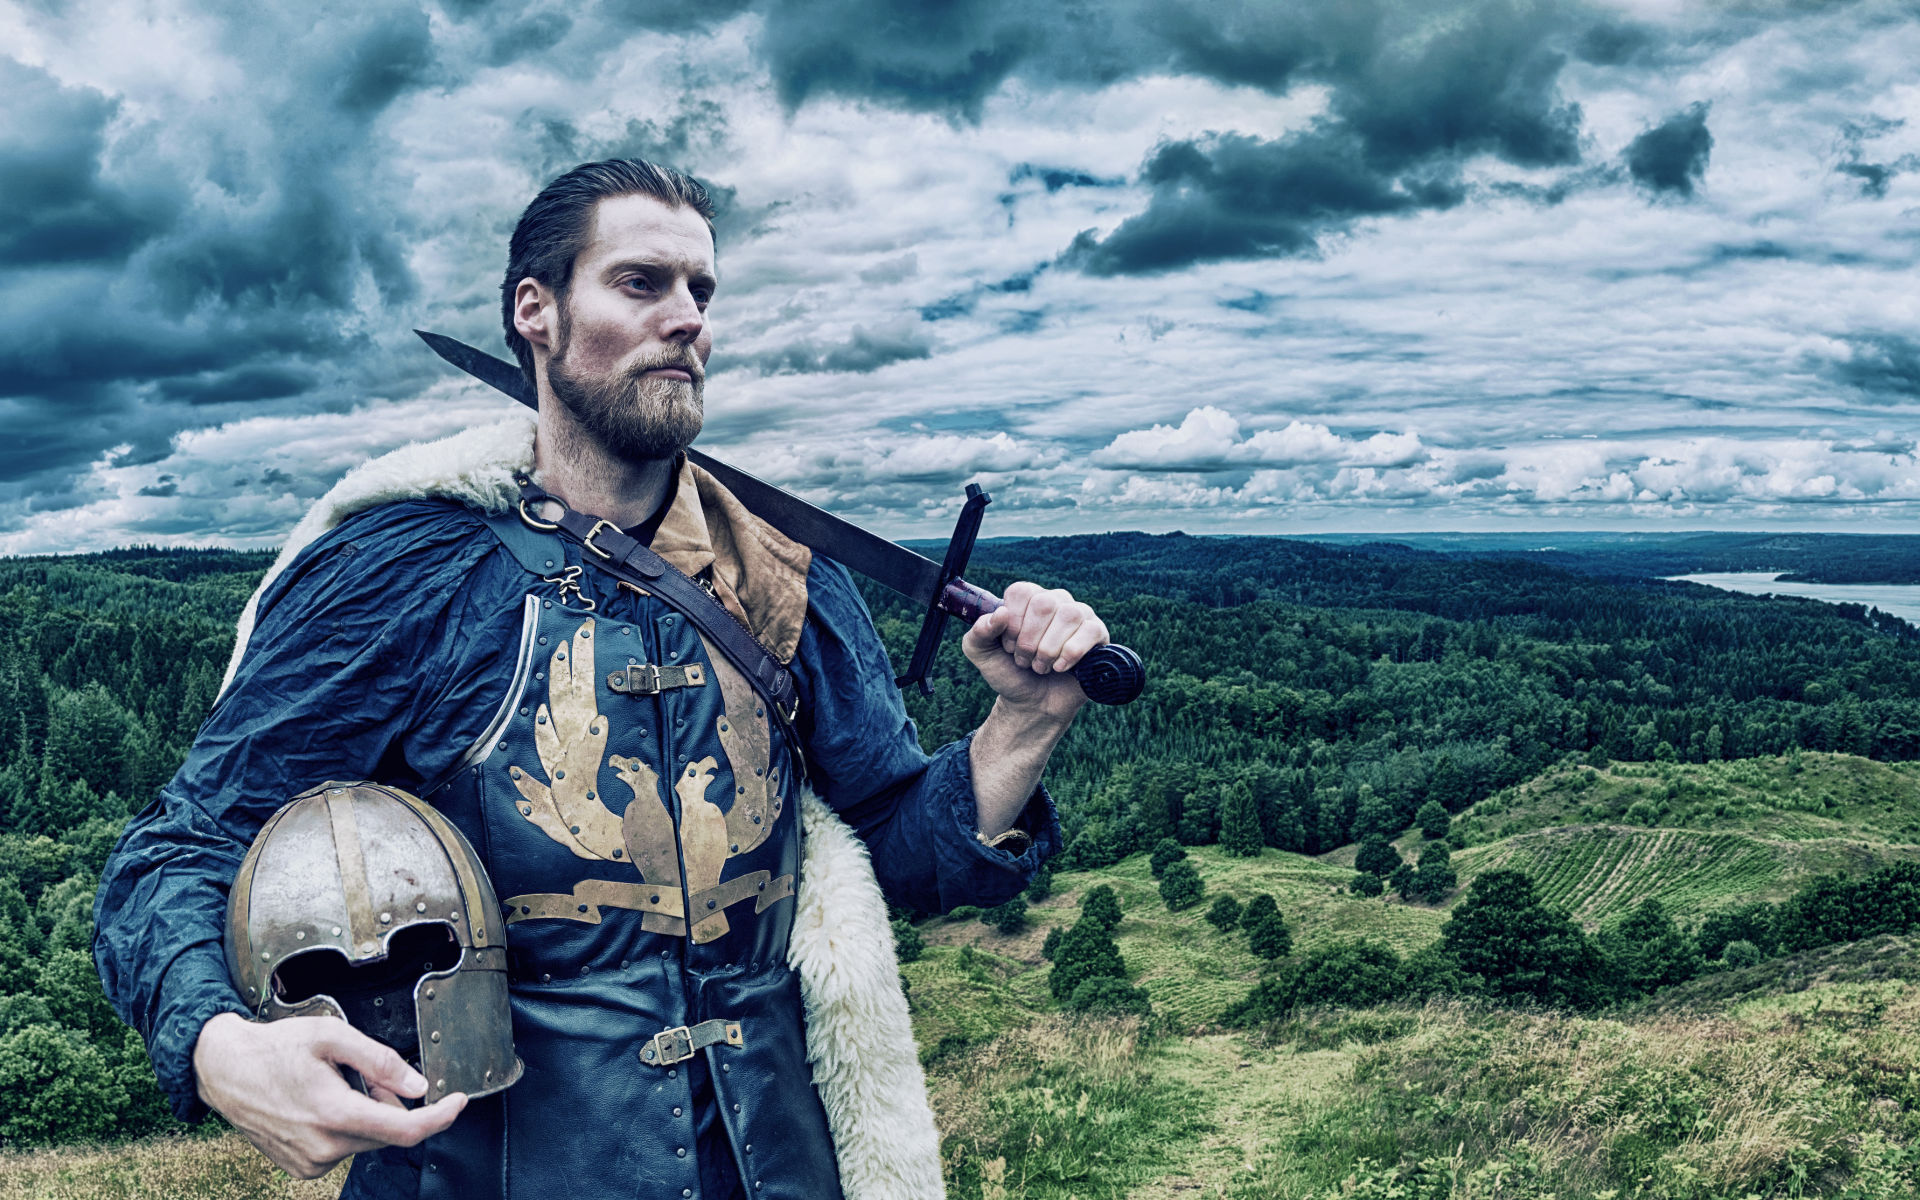 Viking warrior stands on hill overlooking the landscape